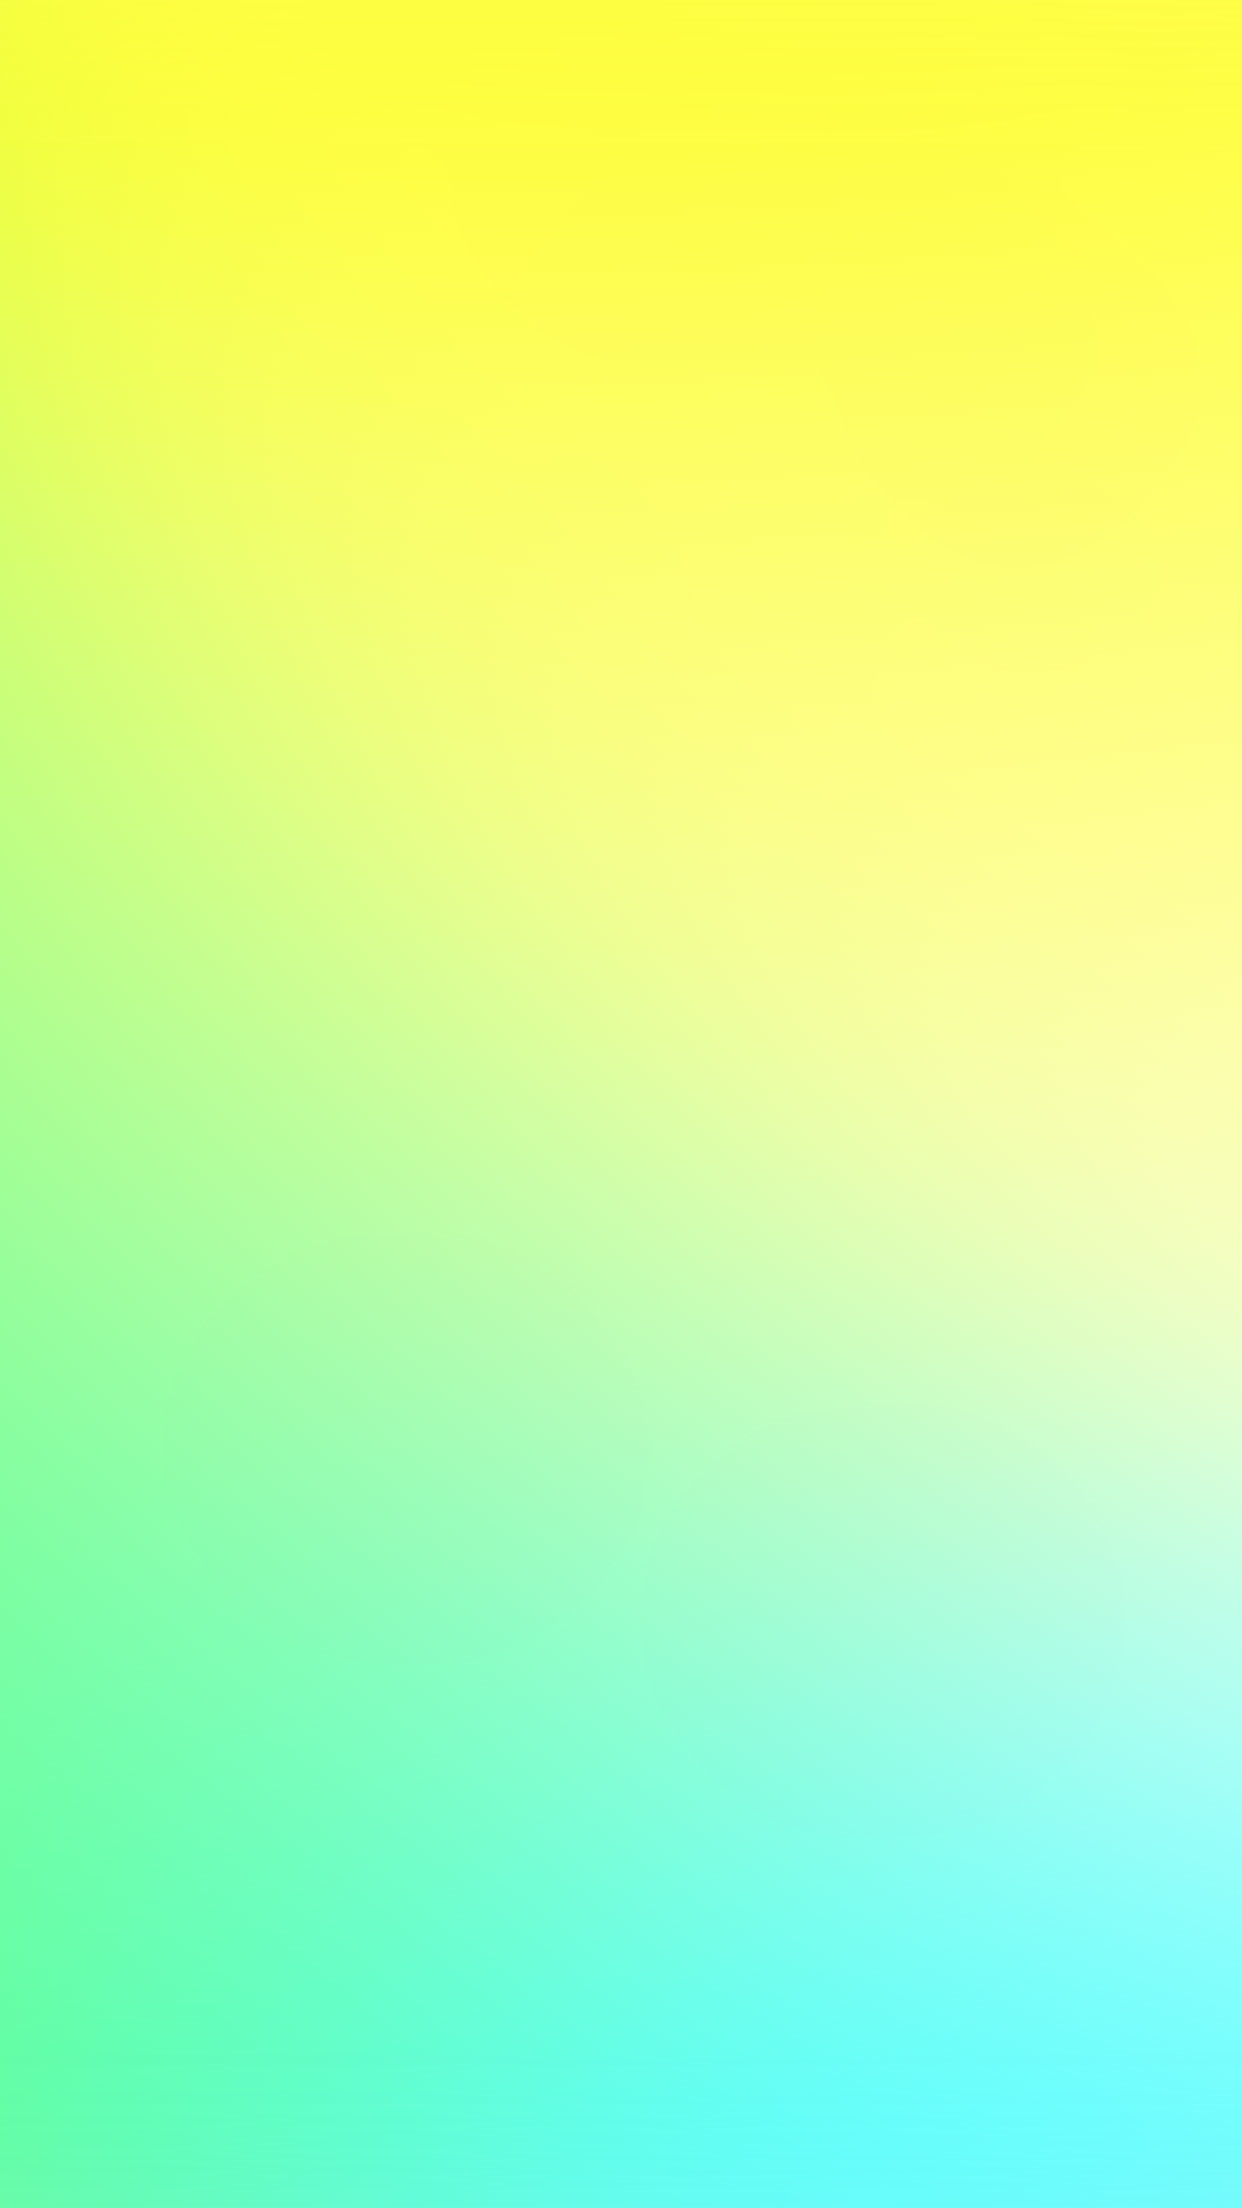 Yellow Wallpapers (64+ images)